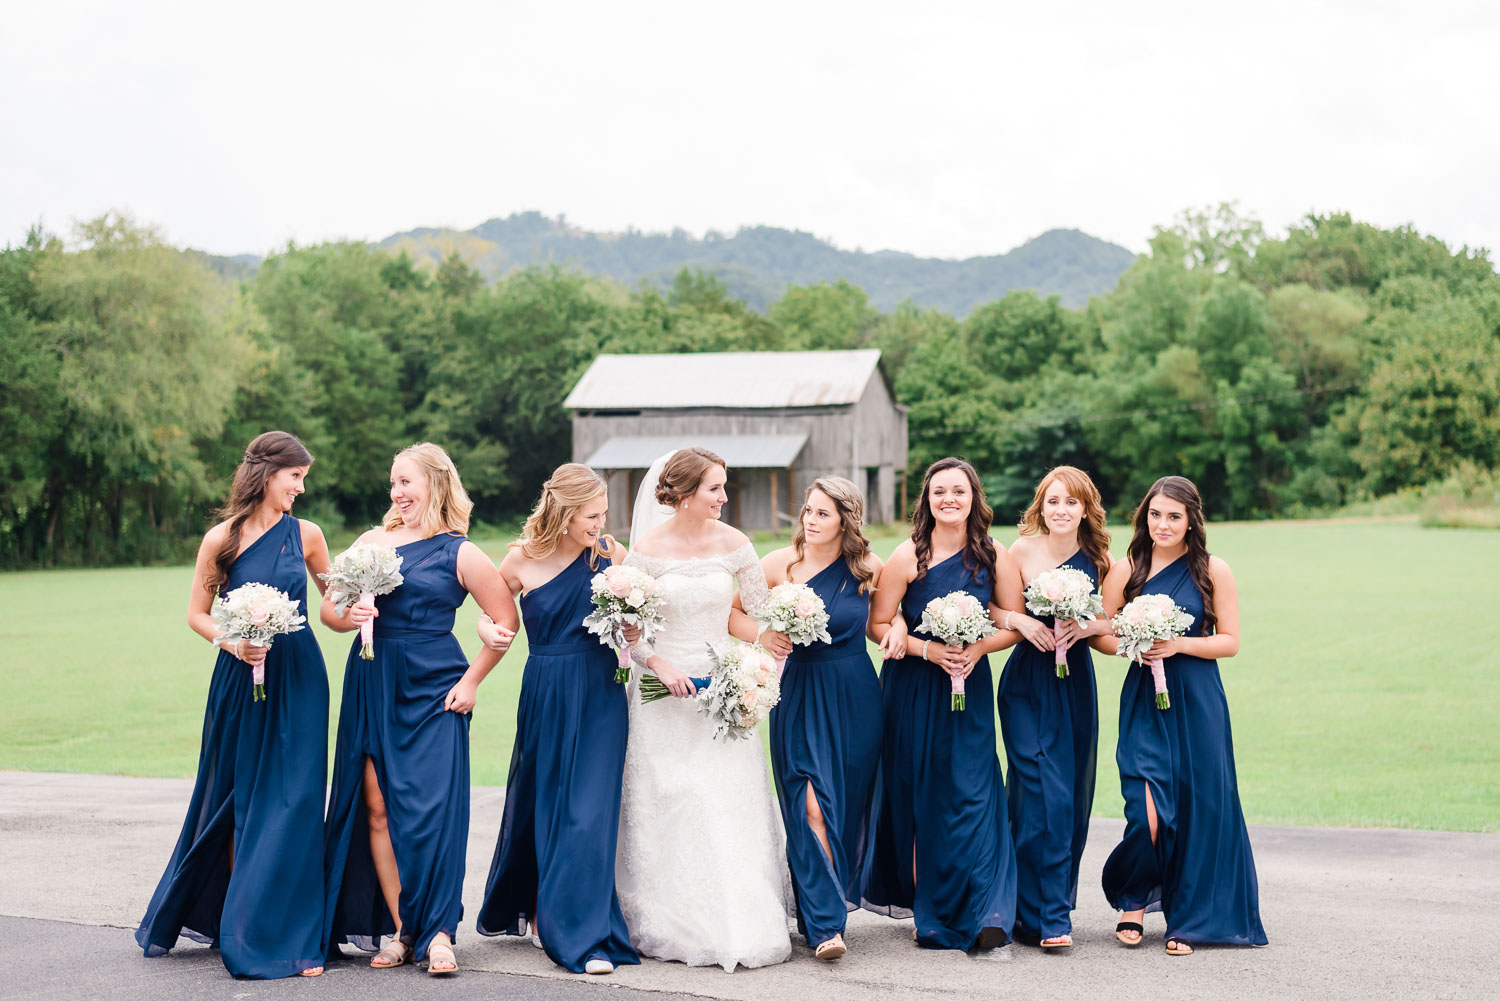 bridesmaids in navy and bride in white Oled Cassini wedding dress in front of a rustic barn in Gatlinburg TN